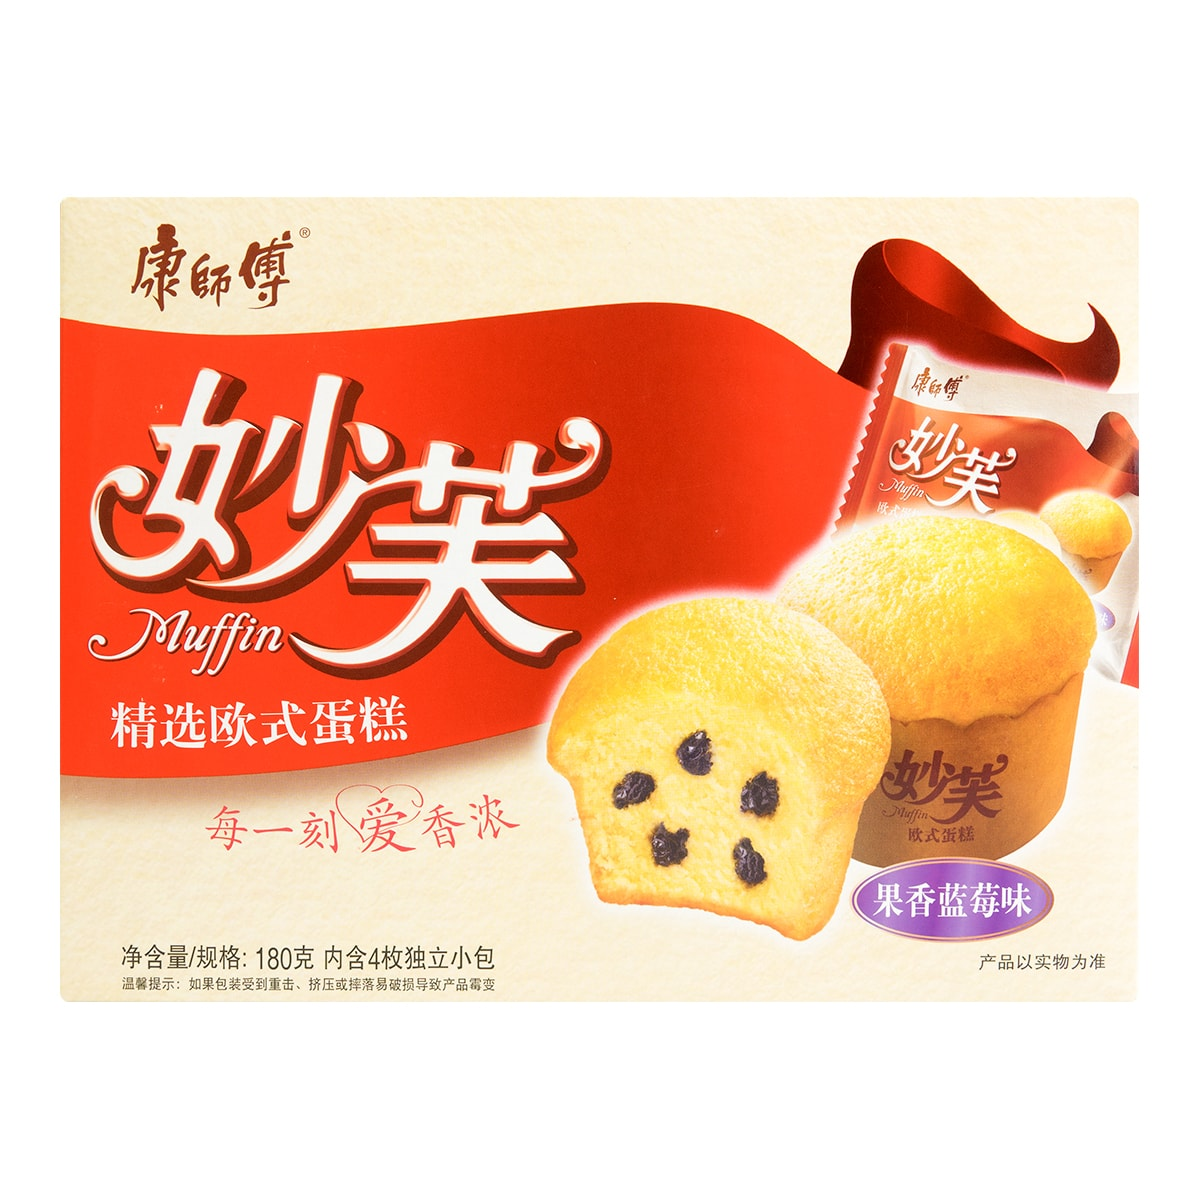 Yamibuy.com:Customer reviews:【Clearance】Muffin Blueberry Flavor 4packs 180g